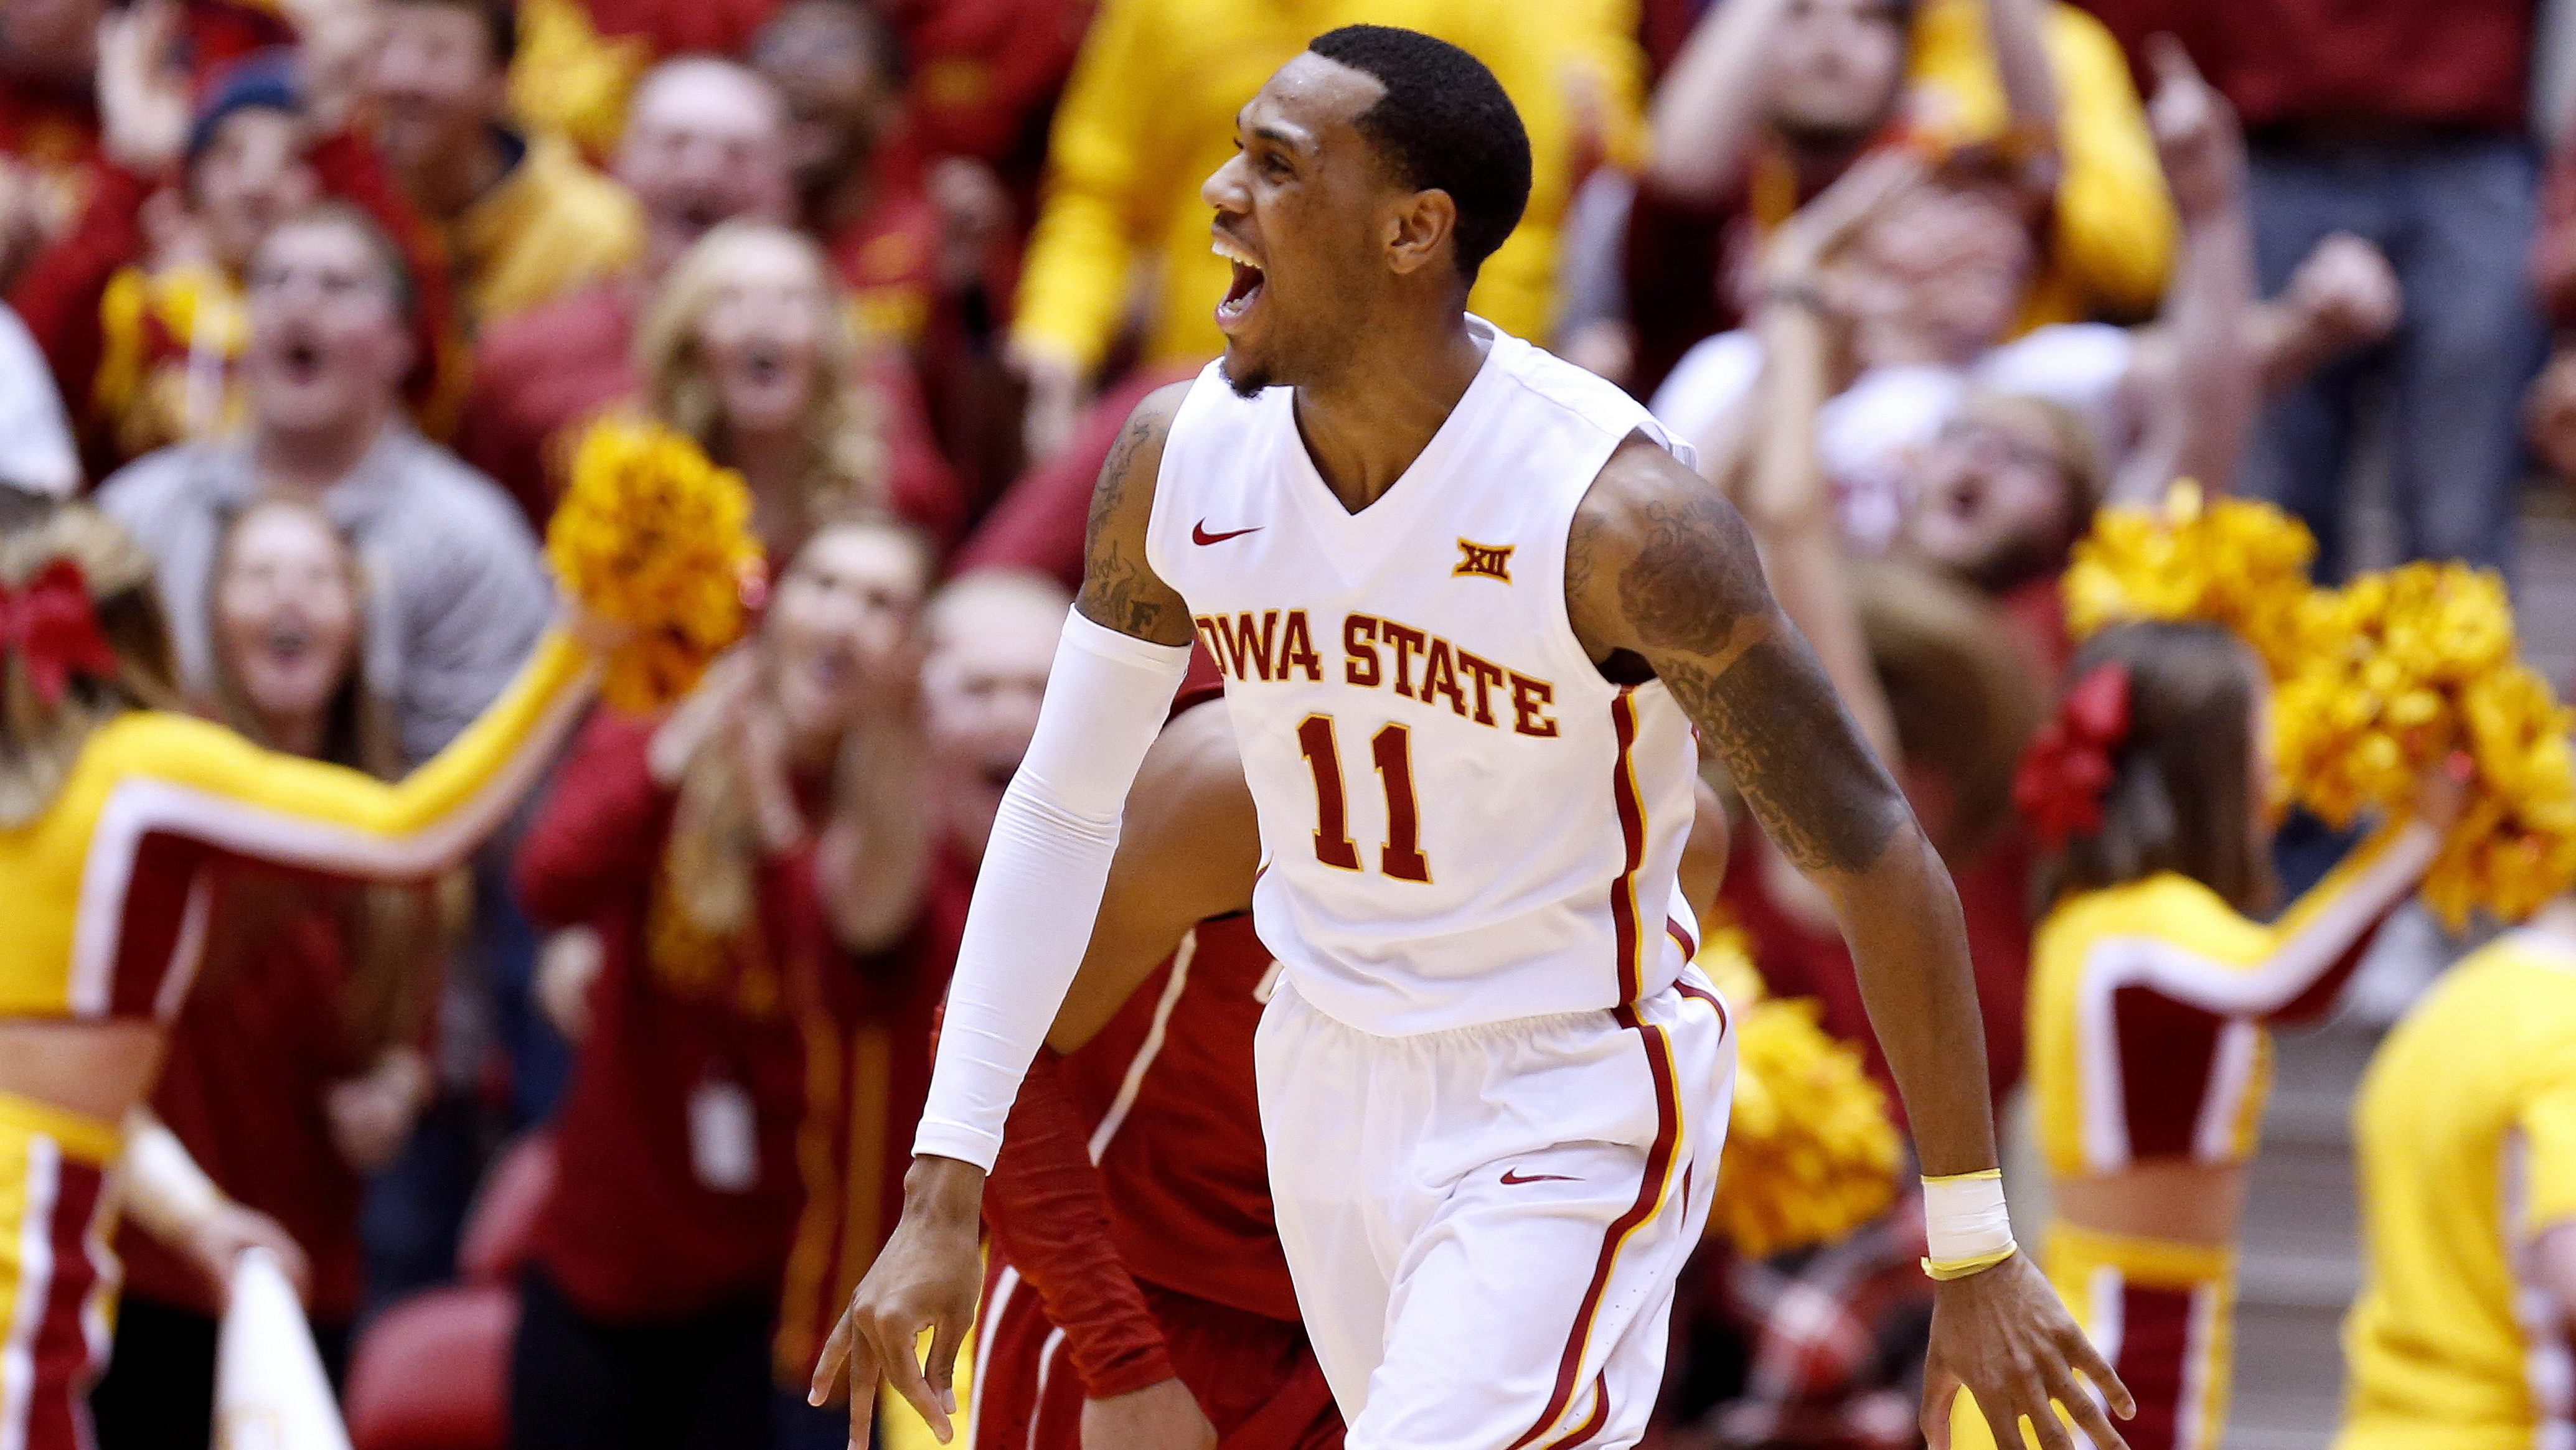 AMES, IA - JANUARY 18: Monte Morris #11 of the Iowa State Cyclones celebrates after scoring a three point basket in the second half of play against the Oklahoma Sooners at Hilton Coliseum on January 18, 2016 in Ames, Iowa. The Iowa State Cyclones won 82-77 over the Oklahoma Sooners. (Photo by David Purdy/Getty Images)